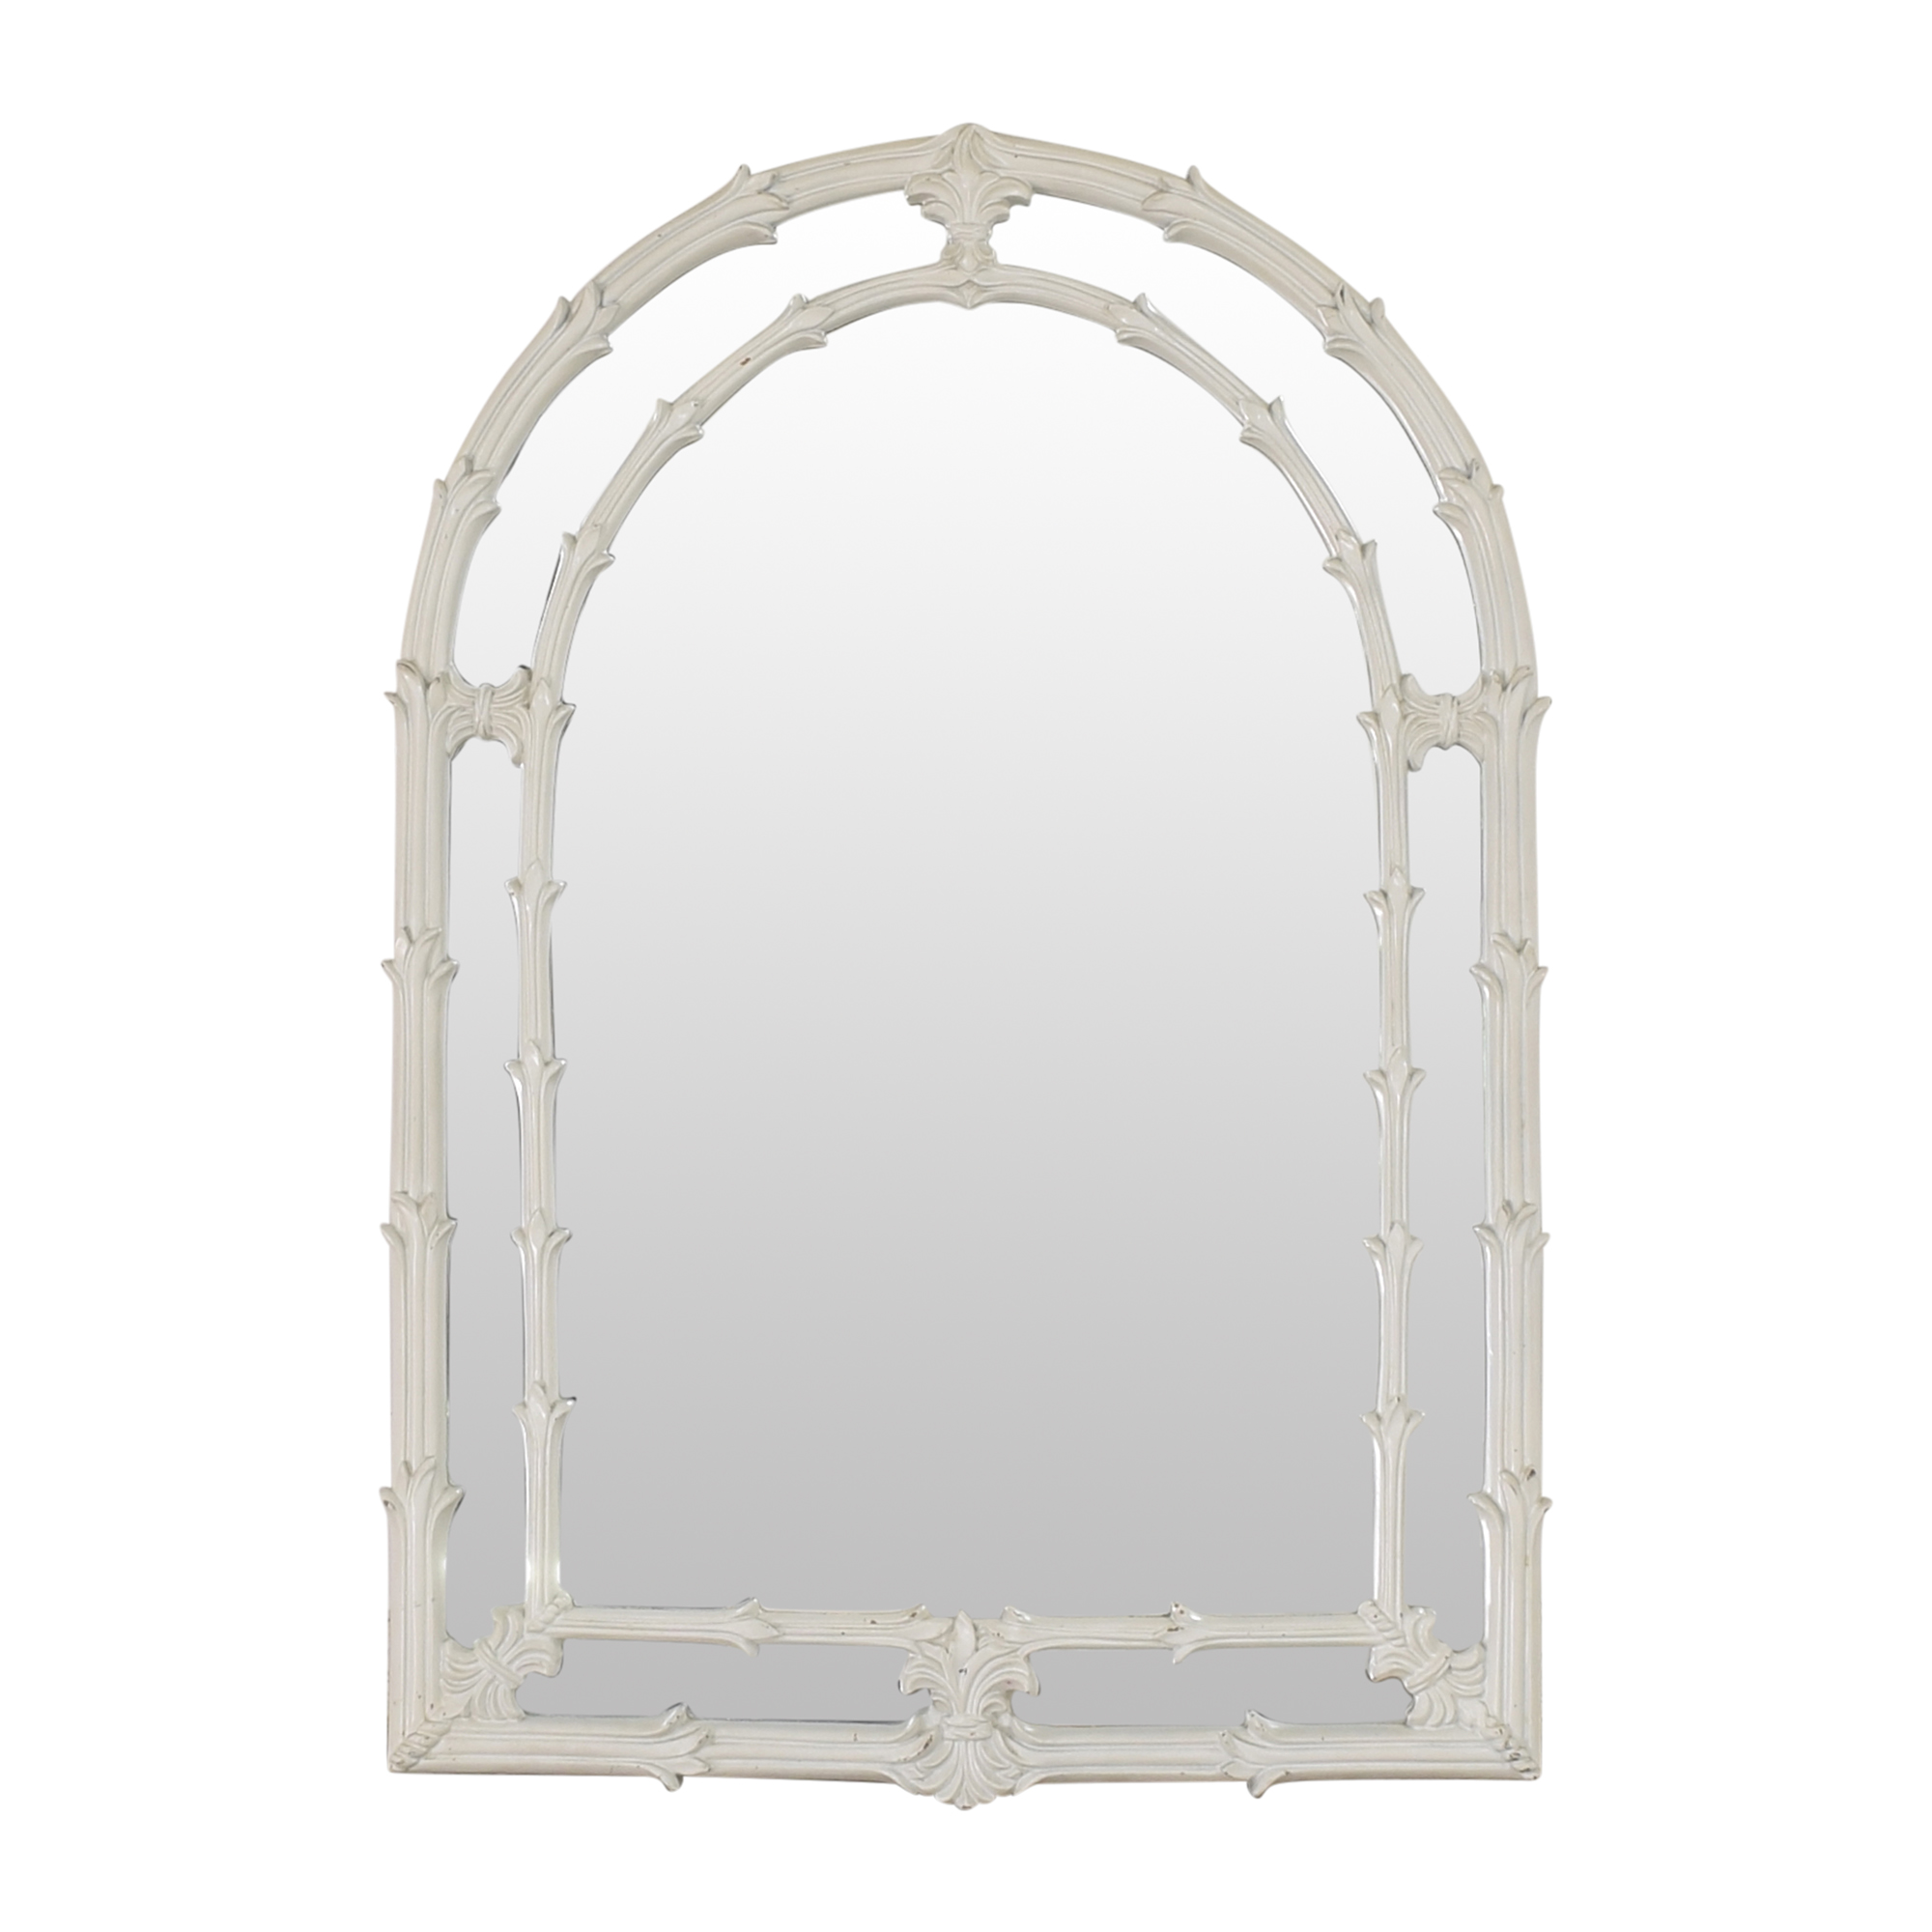 shop Arch Wall Mirror  Decor